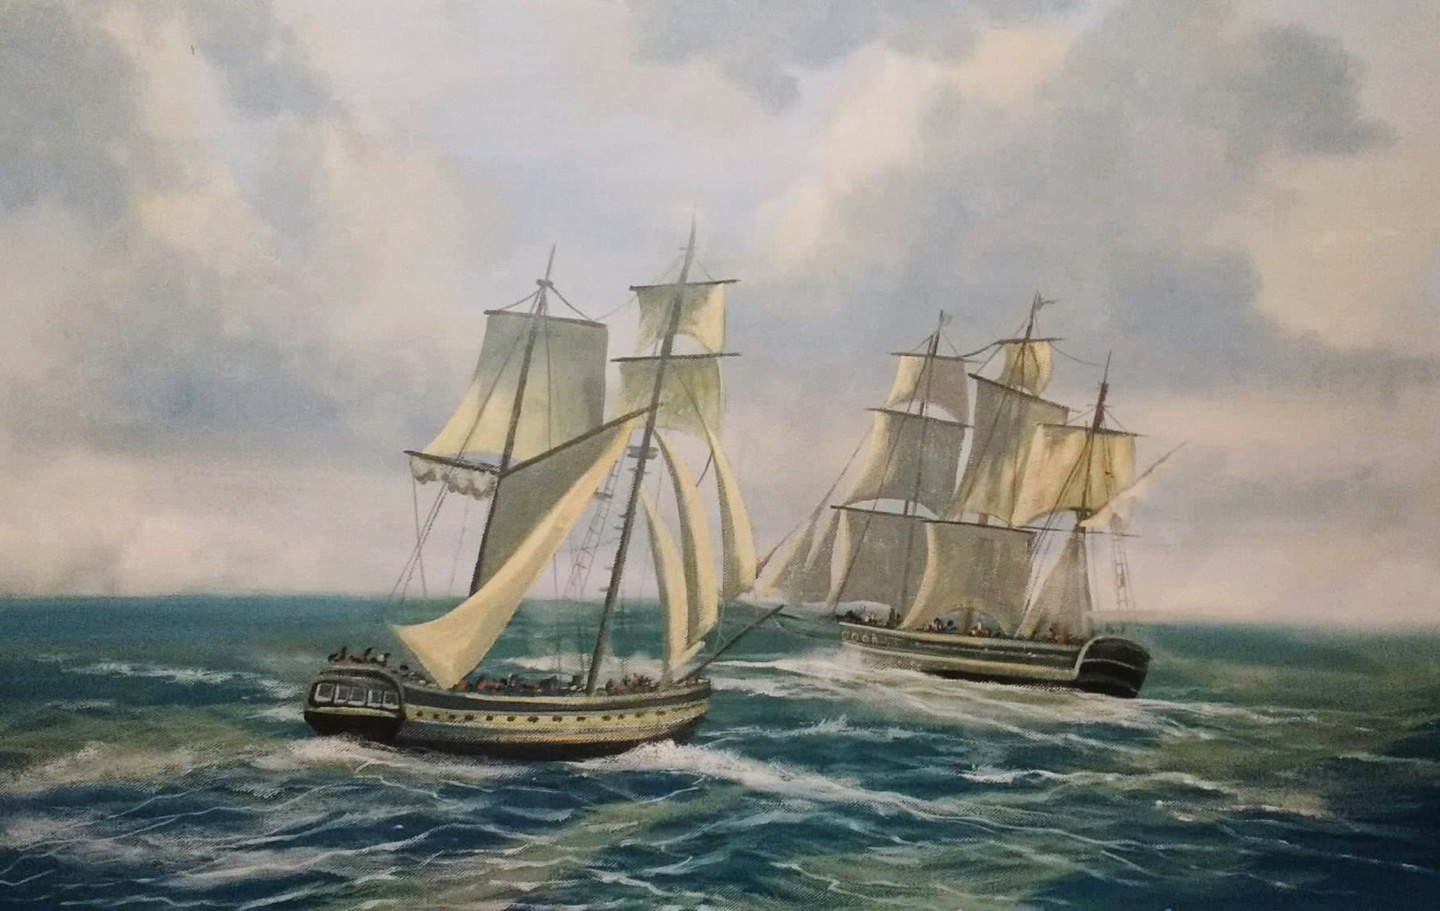 Cathal O Malley - the tall ships race